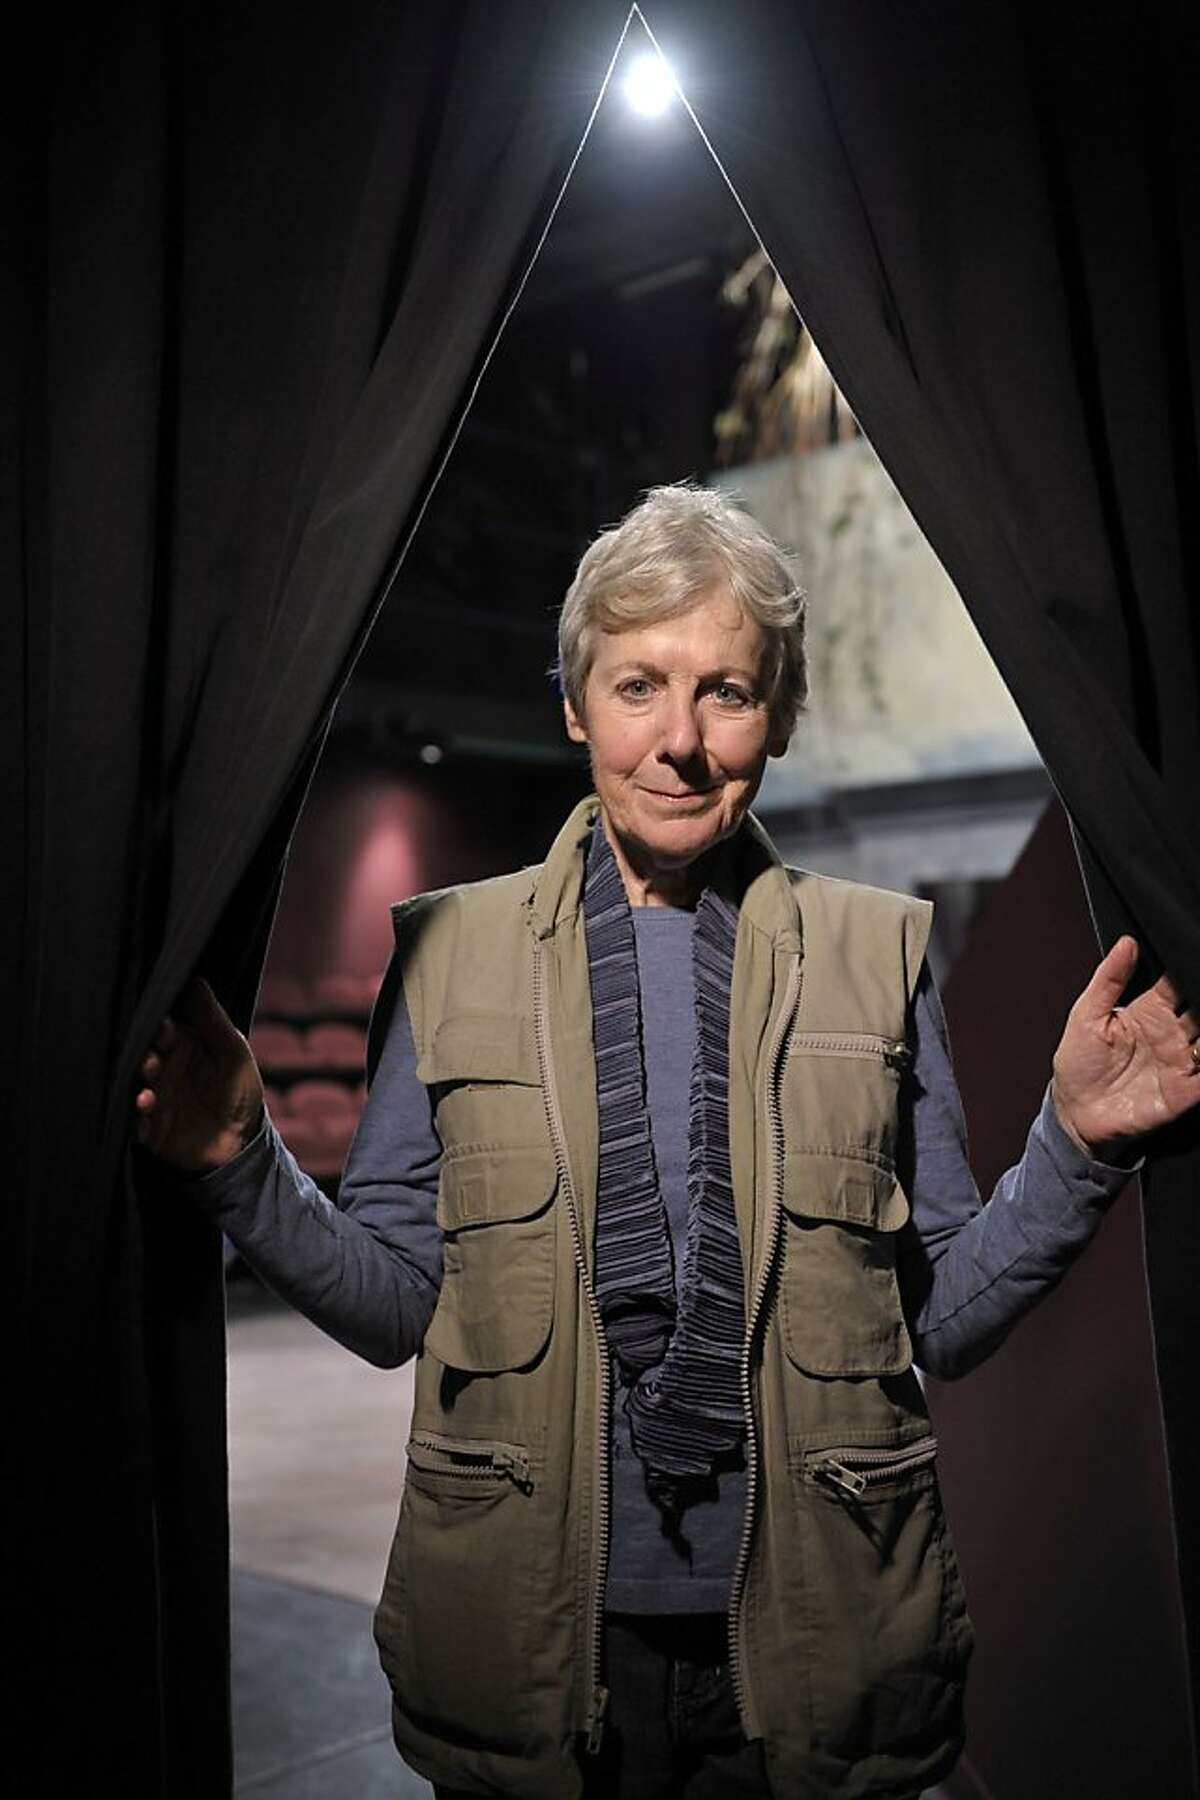 """Veteran Bay Area actor and director Joy Carlin has had a busy year. She's got a juicy scene in Woody Allen's """"Blue Jasmine,"""" she performed in MarinTheatre Company's acclaimed """"Beauty Queen of Leenane"""" and she's directing Aurora Theatre Company's season-opener, """"After the Revolution,"""" through Sept. 29. Photo by David Allen"""